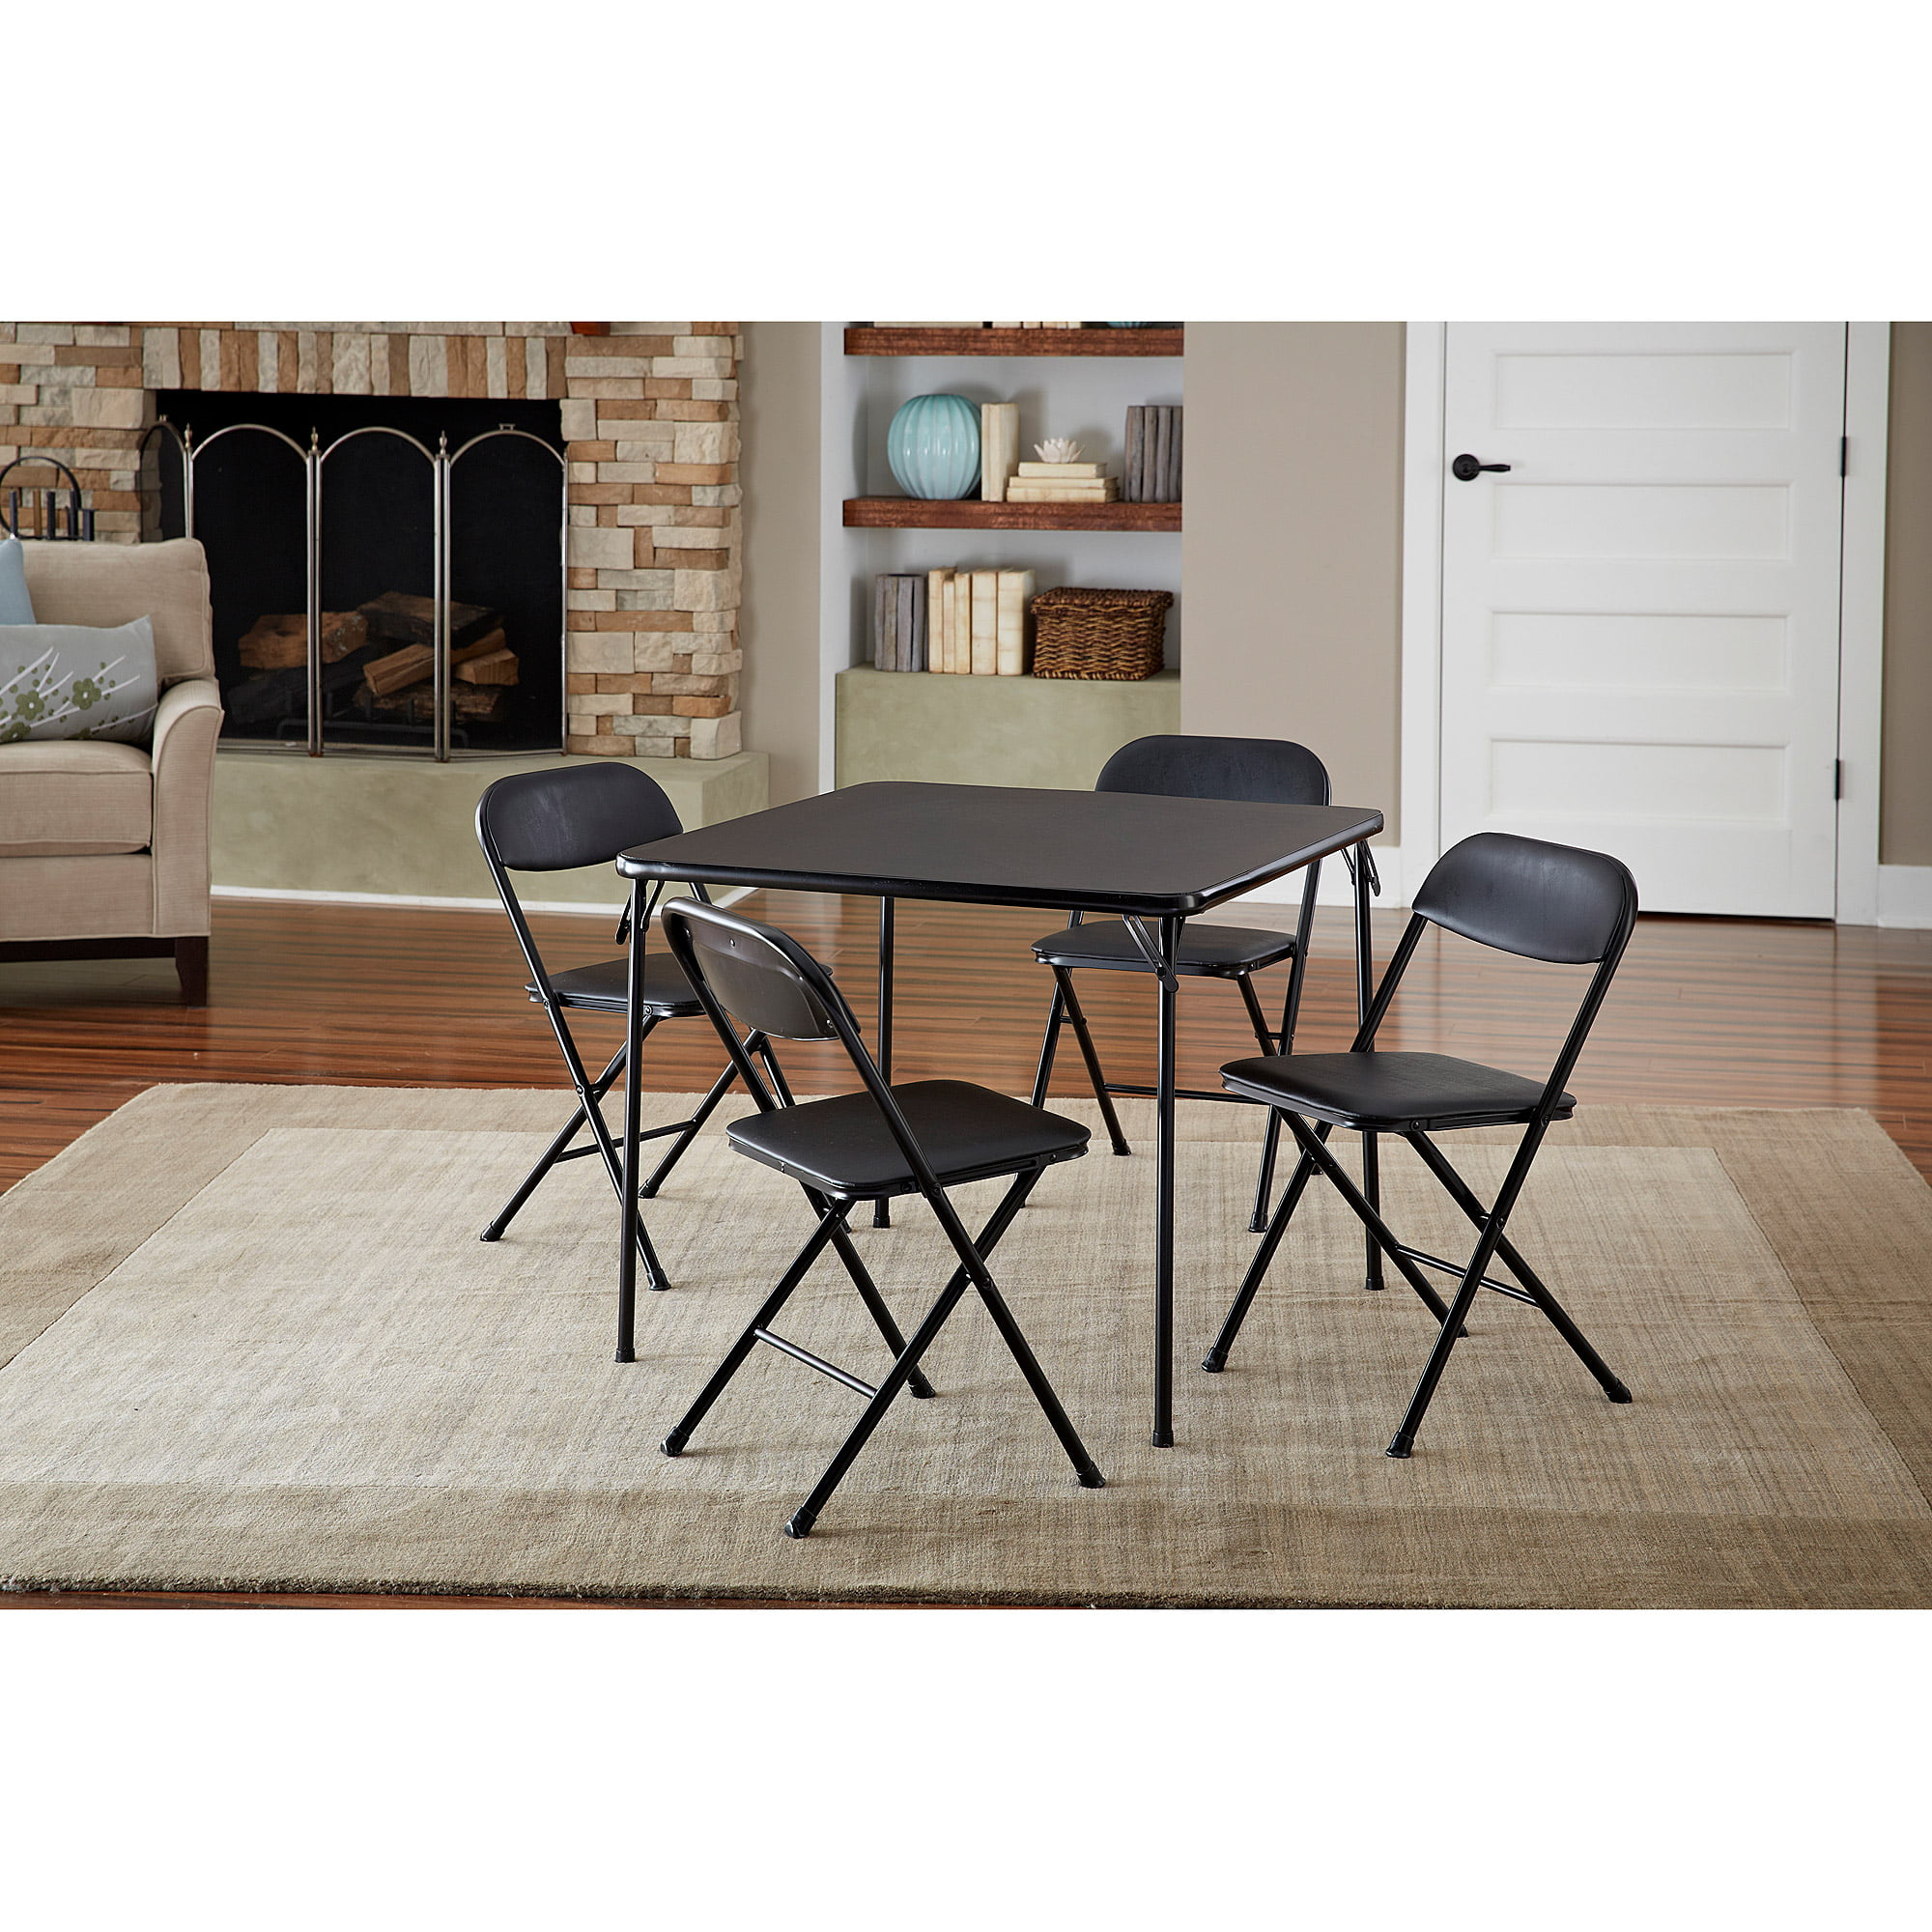 Cosco 5 piece card table set black walmart com